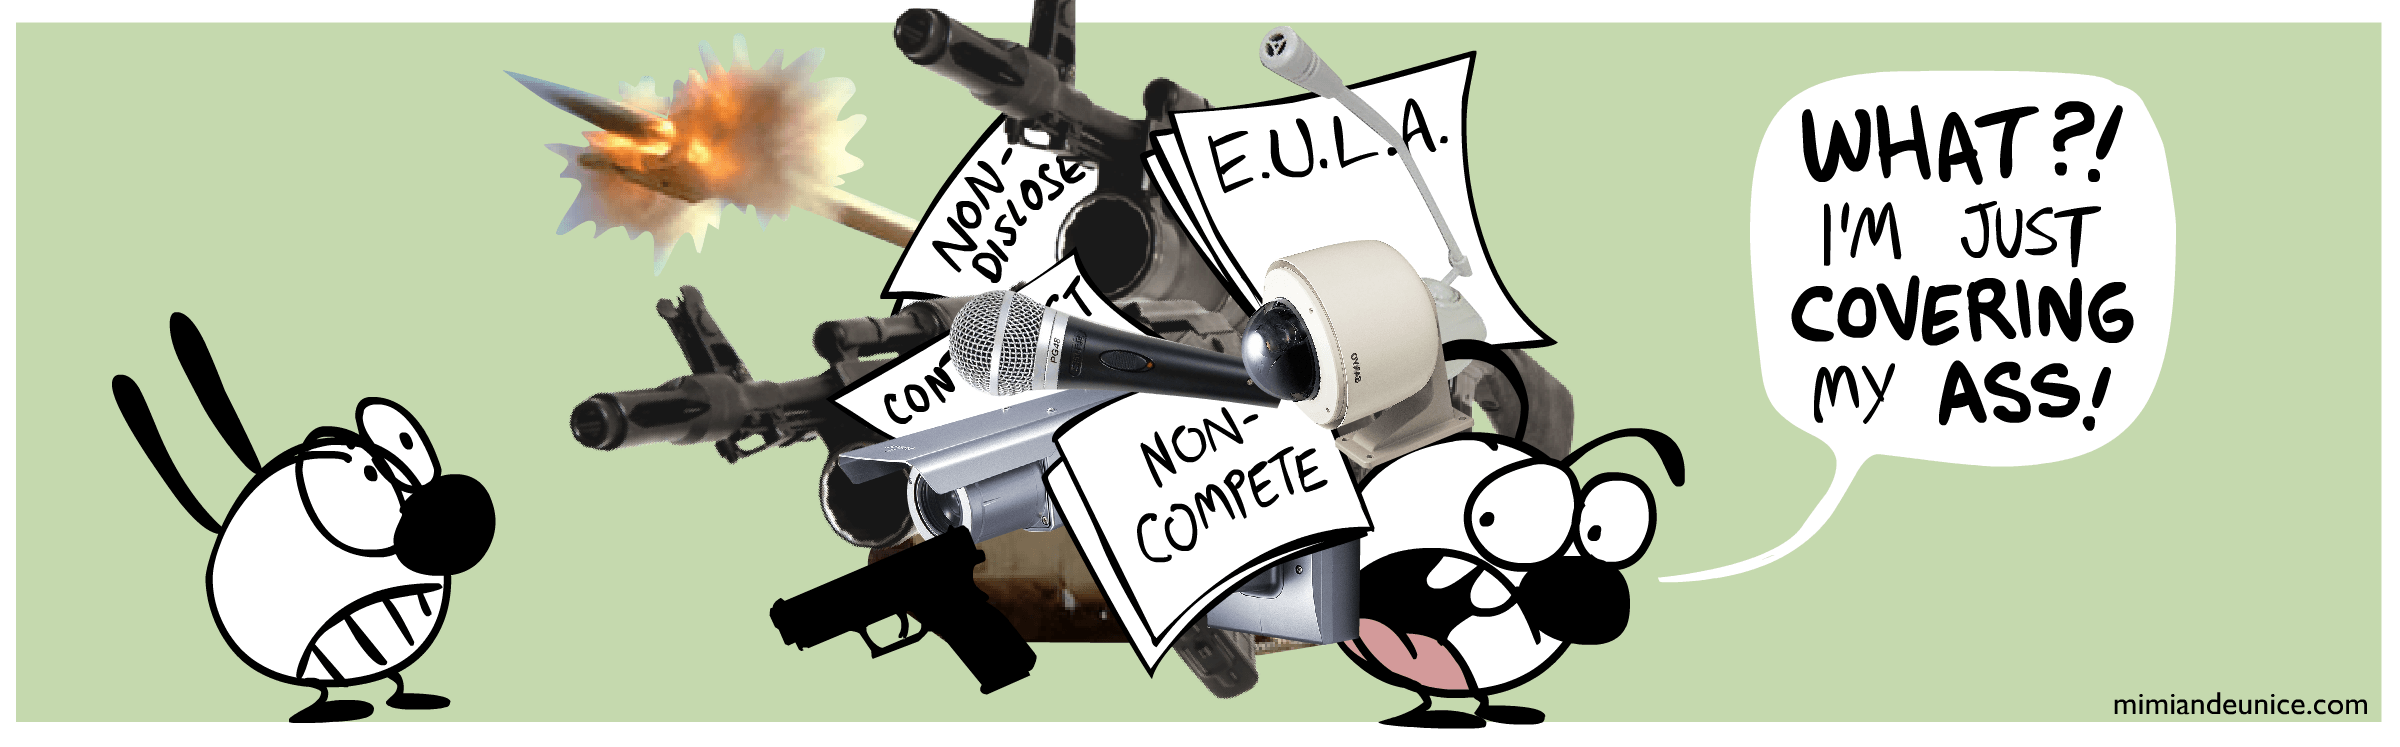 """(Comic) Mimi looks scared seeing Eunice carrying an enormous pile of contract forms, cameras, microphones, and weapons (including rockets going off). Eunice says, """"What?! I'm just covering my ass!"""""""